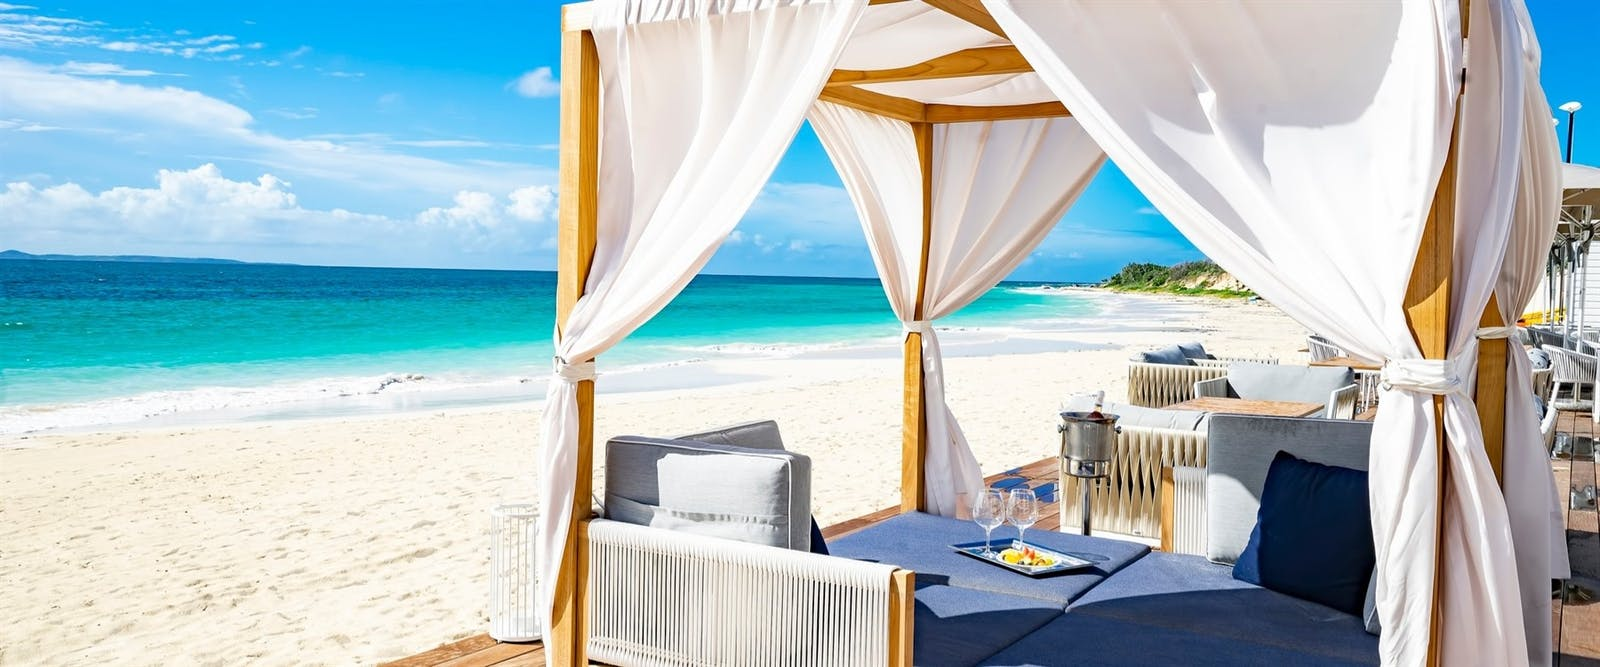 Beach Cabana at CuisinArt Golf Resort & Spa, Anguilla